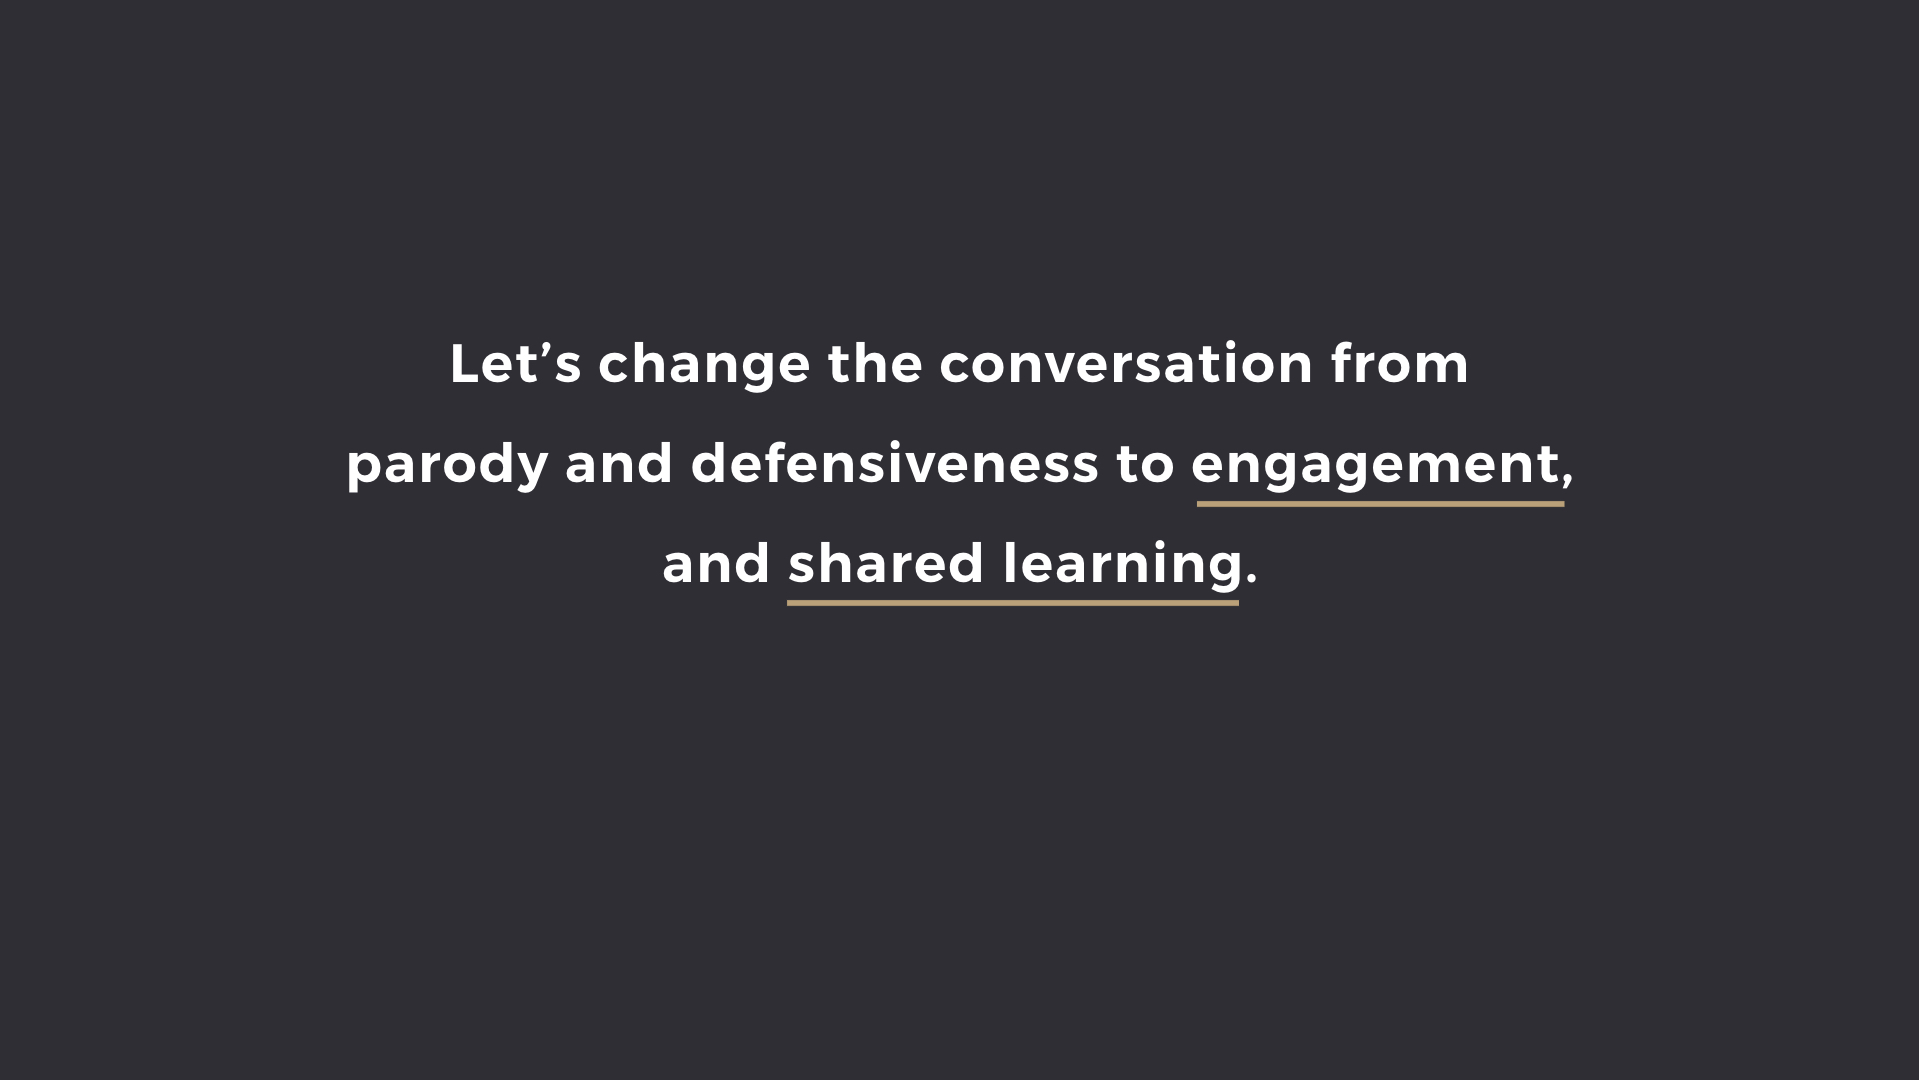 Let's change the conversation from parody and defensiveness to engagement and shared learning